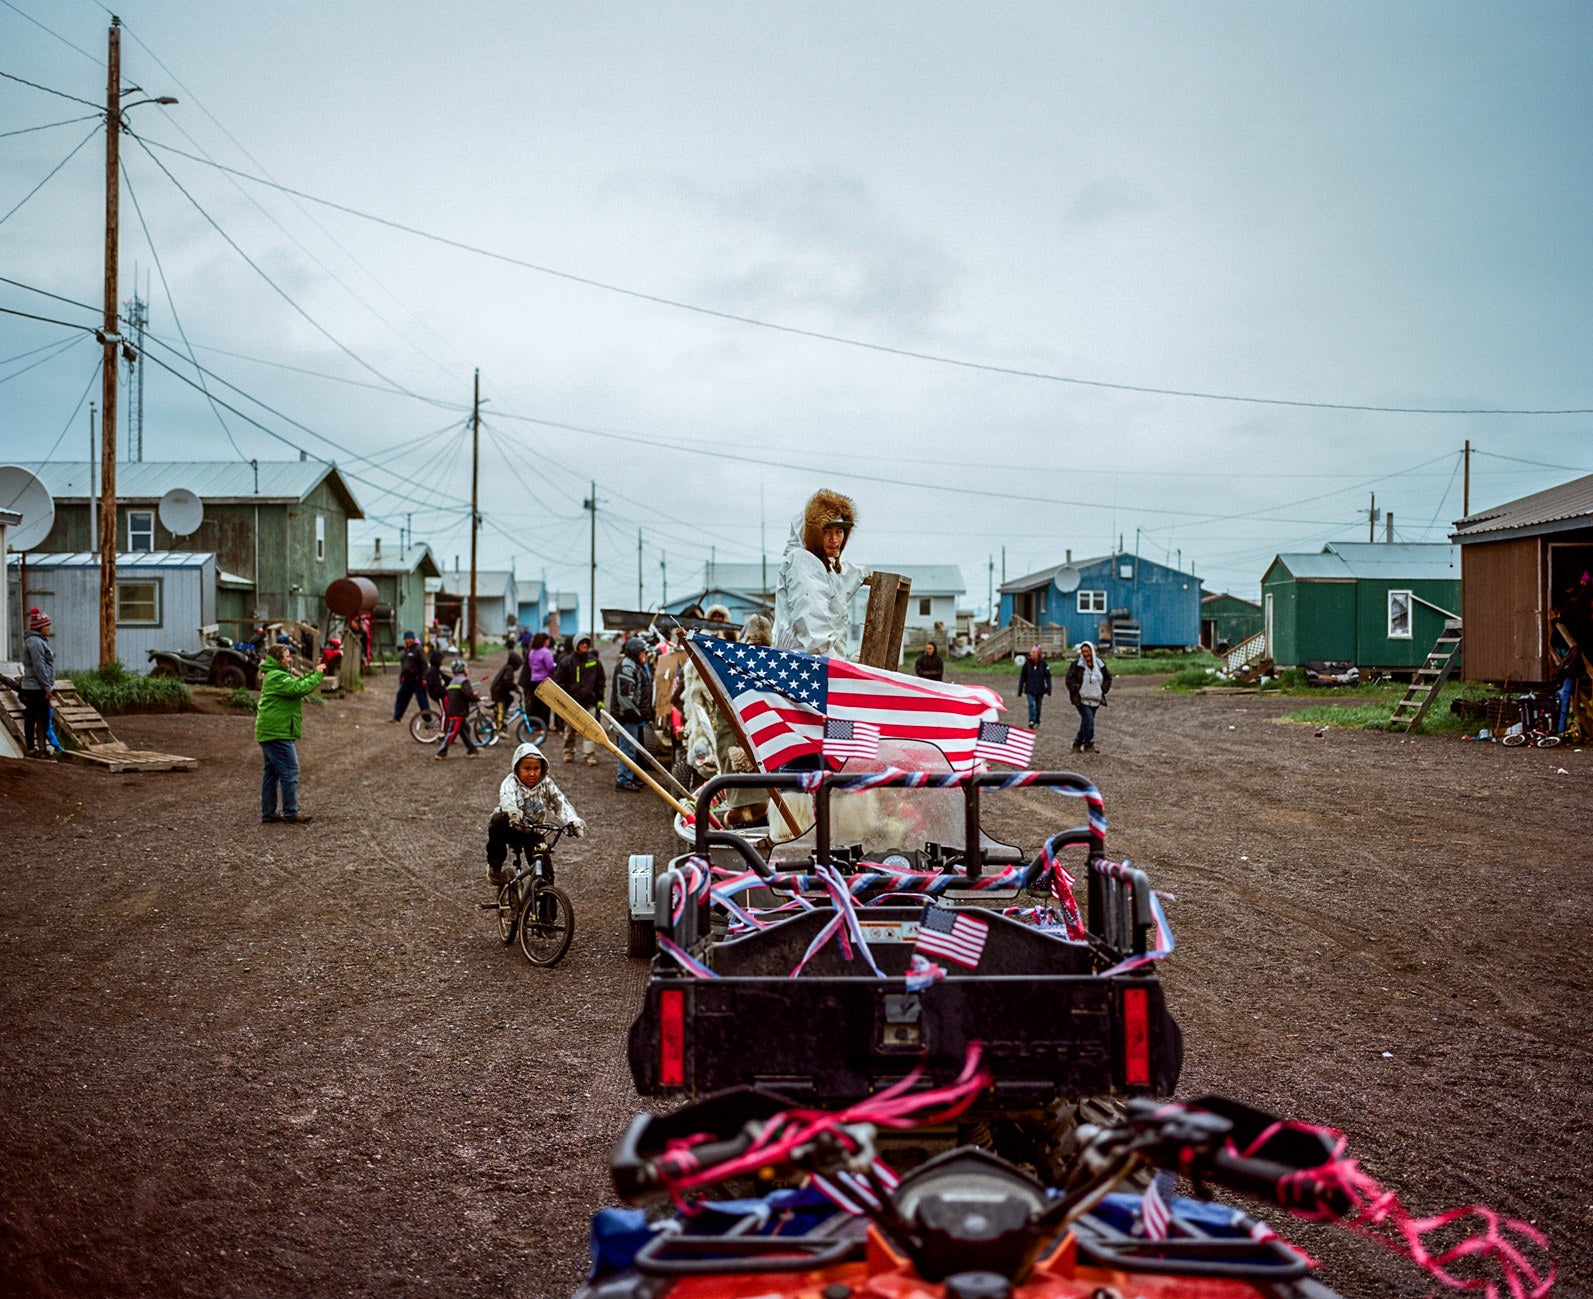 The community of Kivalina, Alaska, participates in the Honda Float Parade on the Fourth of July. The village is not accessible by road, and so during the summer months, the primary mode of transit is four-wheelers and boat, and in the winter, snow machines.